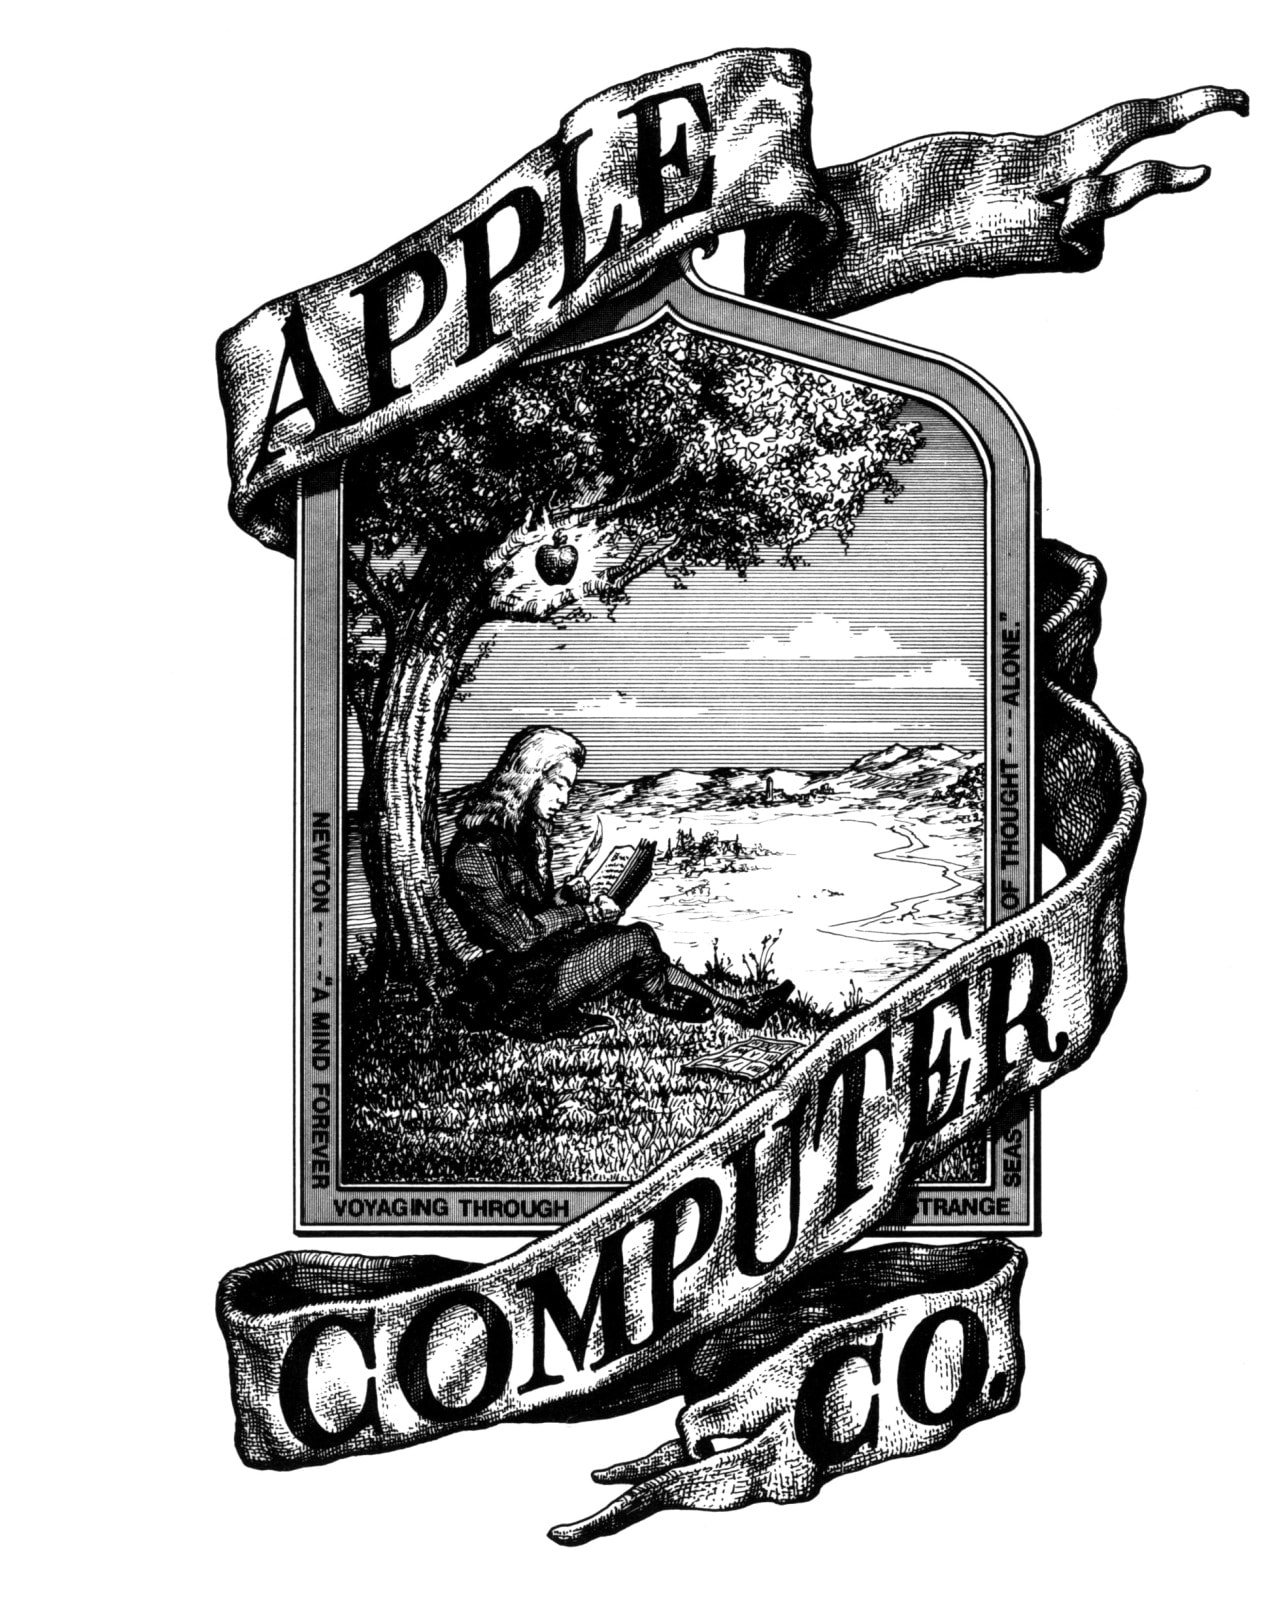 Original Apple logo: Ron Wayne drew Apple's first corporate logo. He tried to include his signature as part of the design, but Steve Jobs made him remove it.